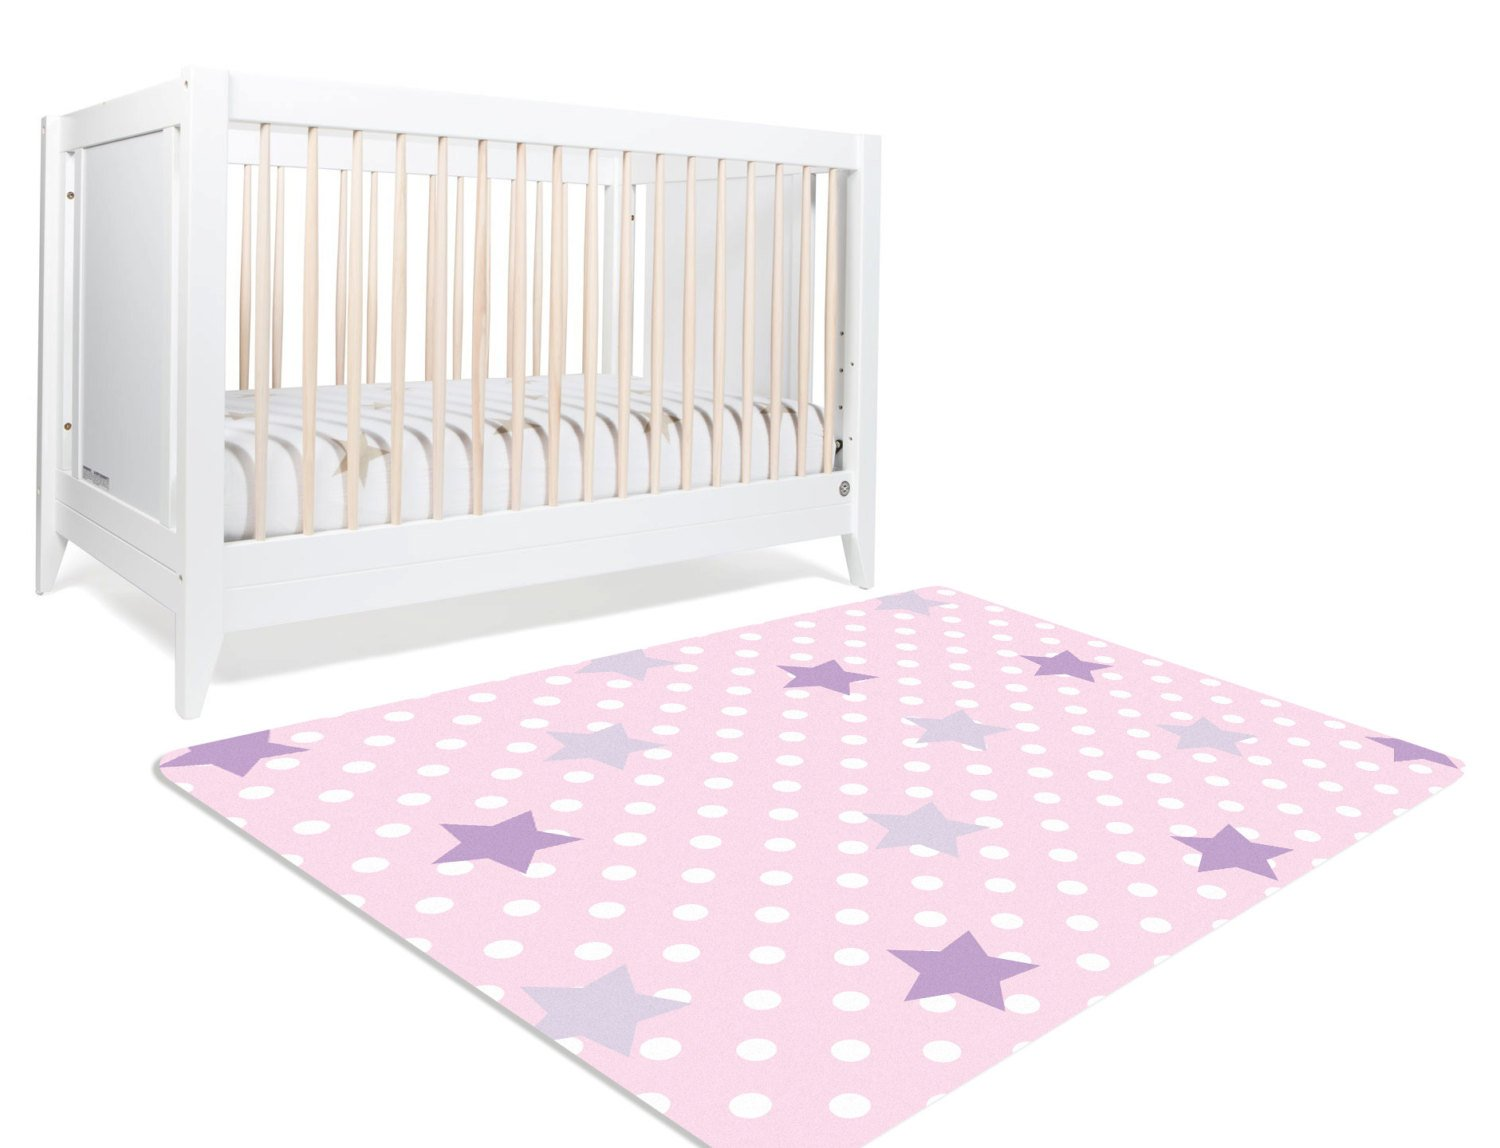 Nursery Floor Rug - Polka Dot Rug - Girls Room Decor - Pink Rug - Rugs For Nursery - Nursery Star - Kids Room Rugs- Star Rug- Playroom Decor